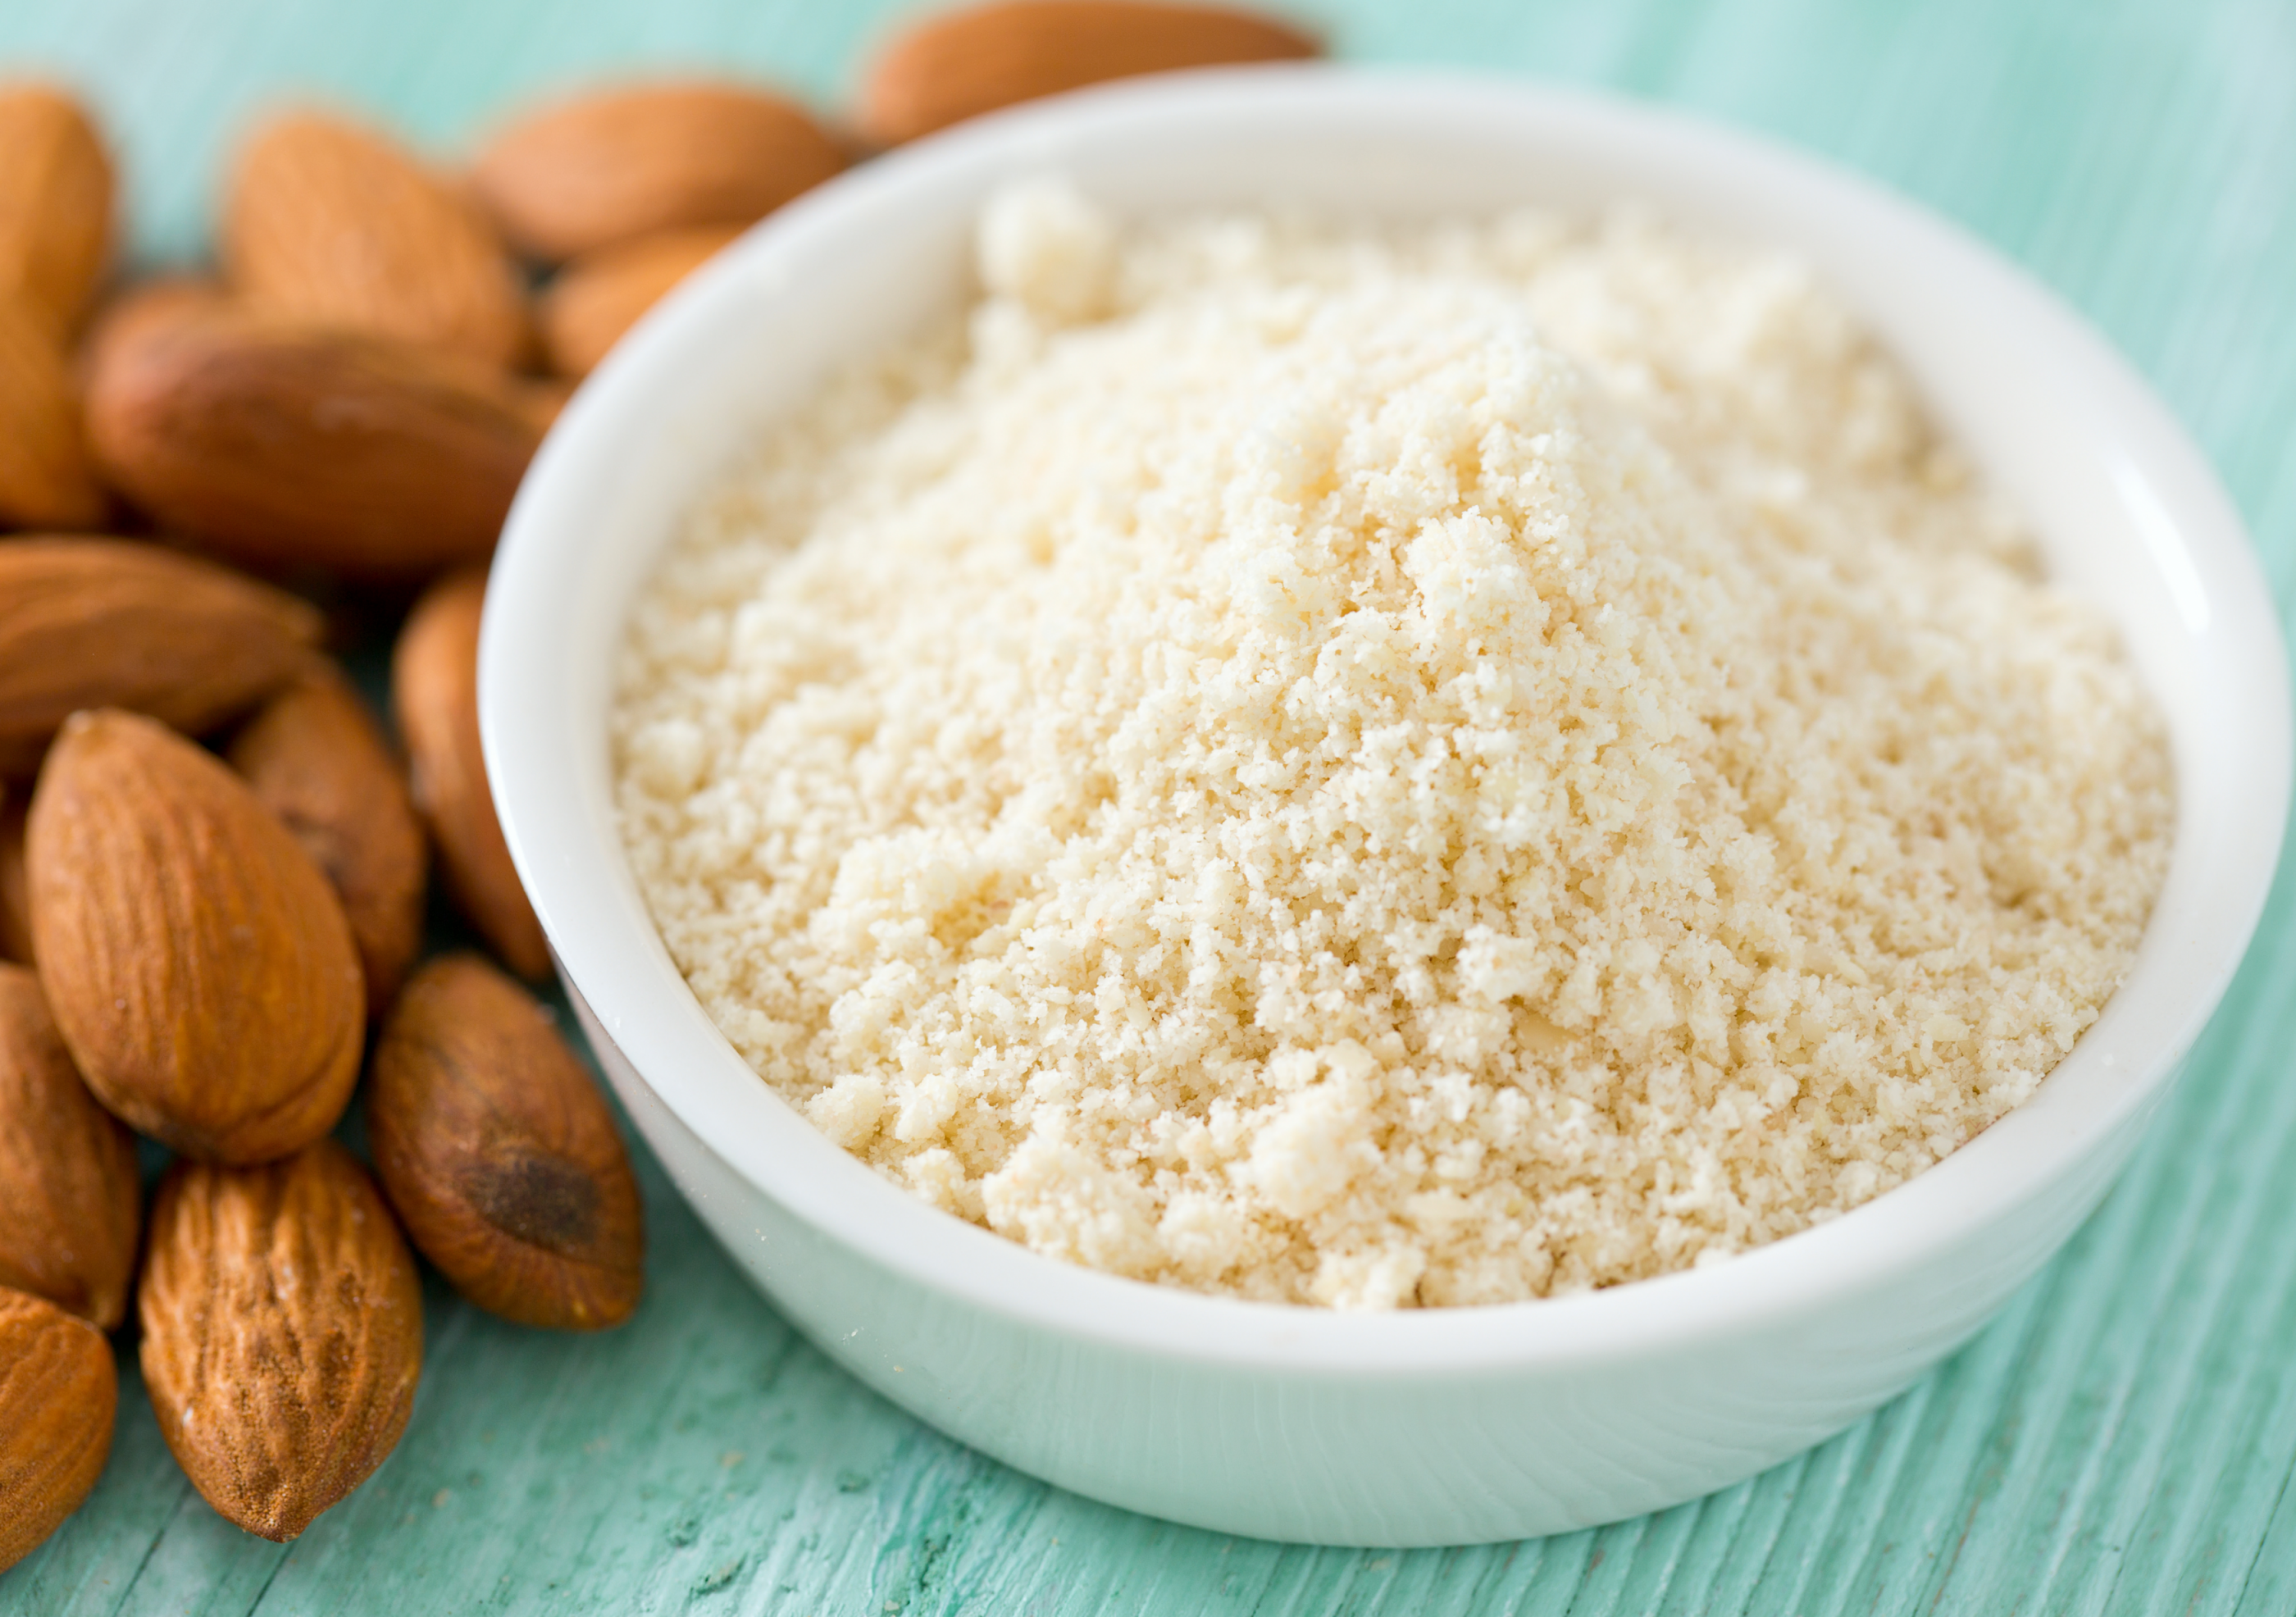 What is almond flour made of